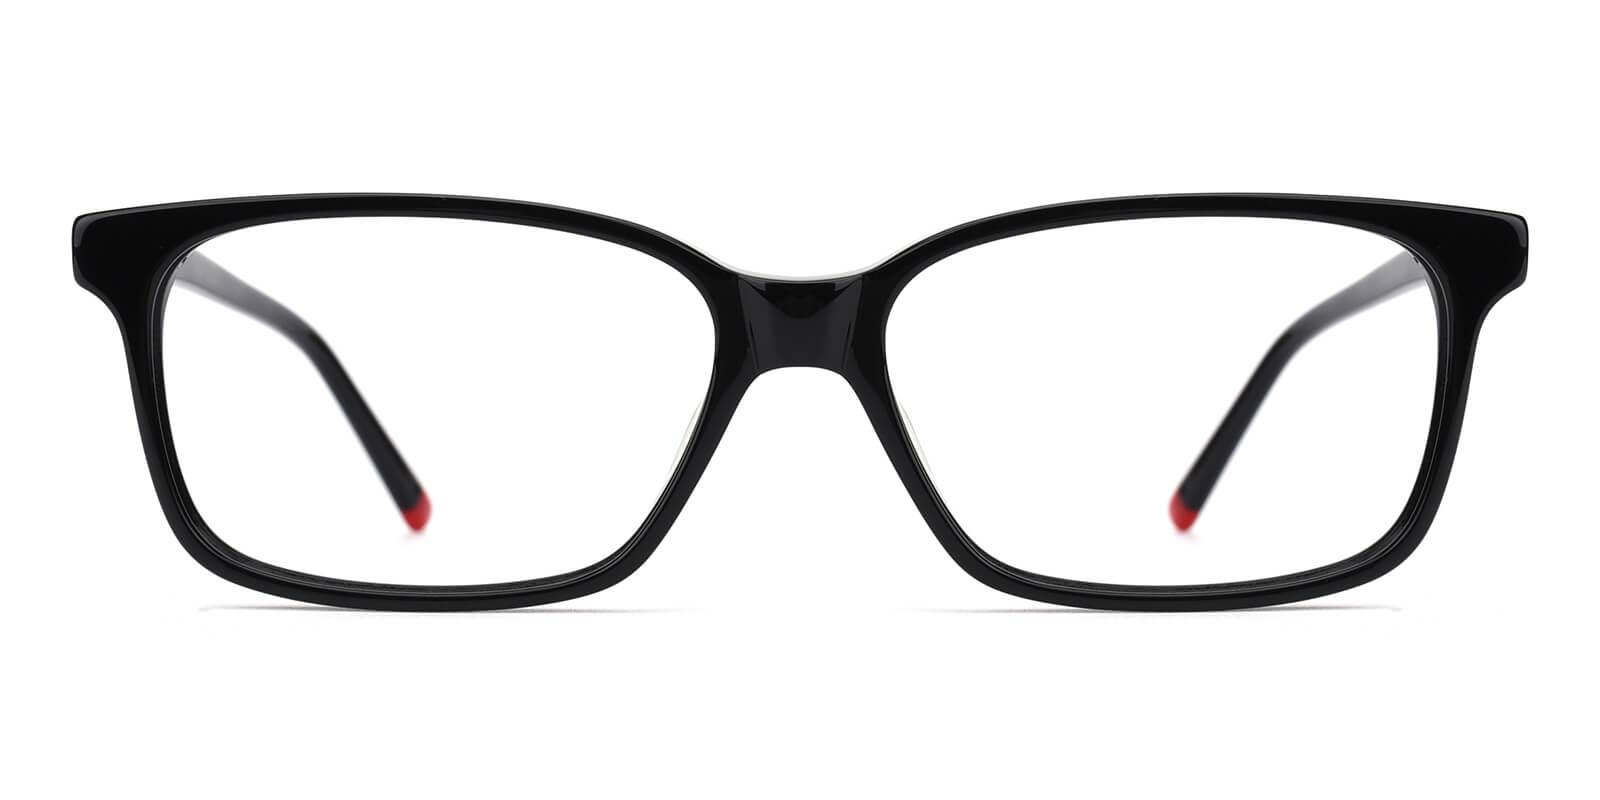 Bolayer-Black-Rectangle-Acetate-Eyeglasses-additional2